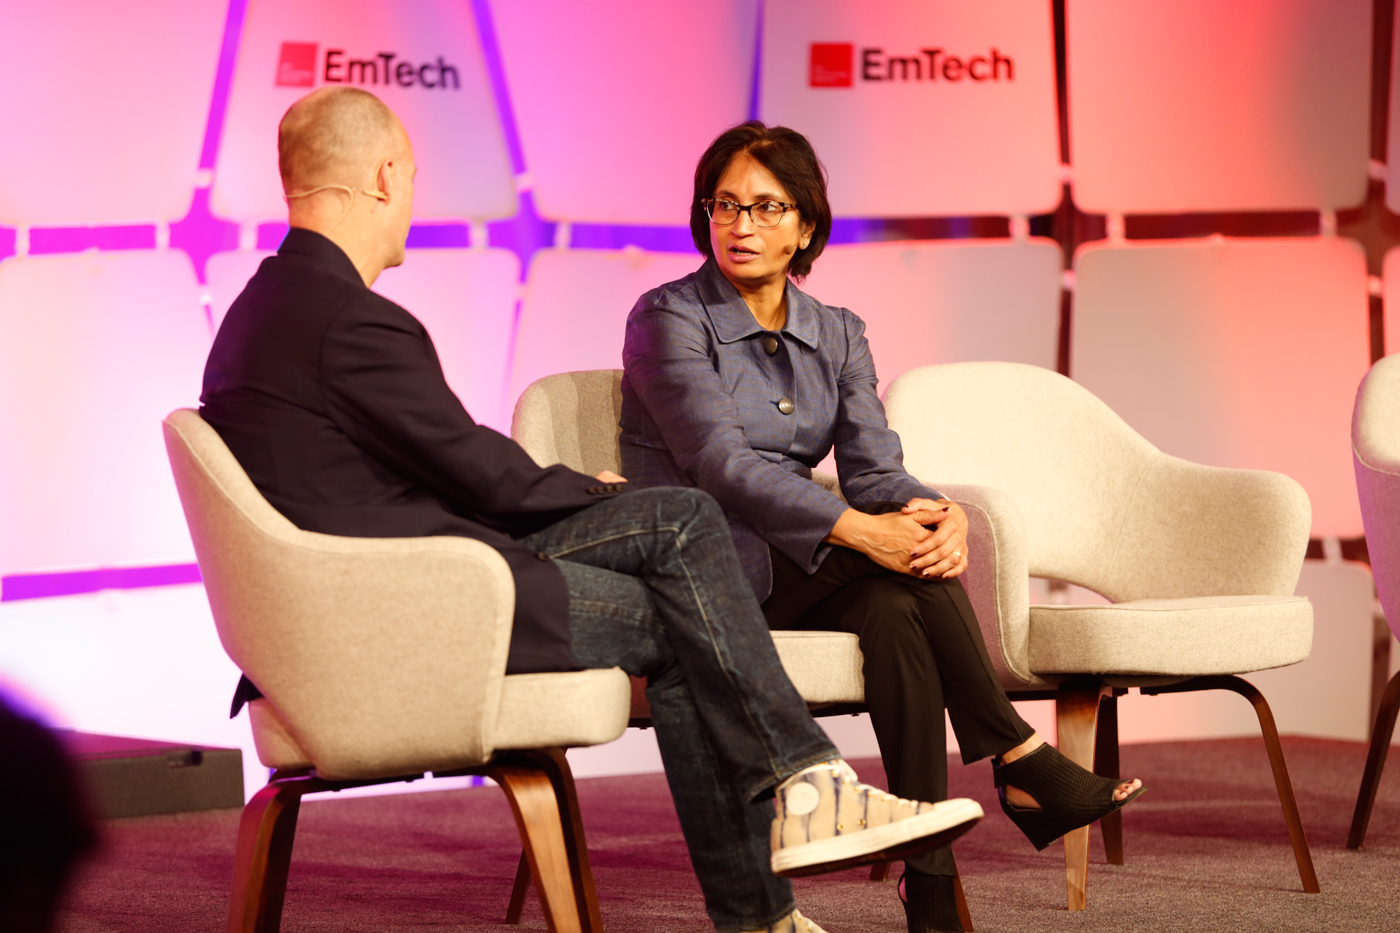 Padmasree Warrior speaking with Jason Pontin at EmTech MIT 2016.